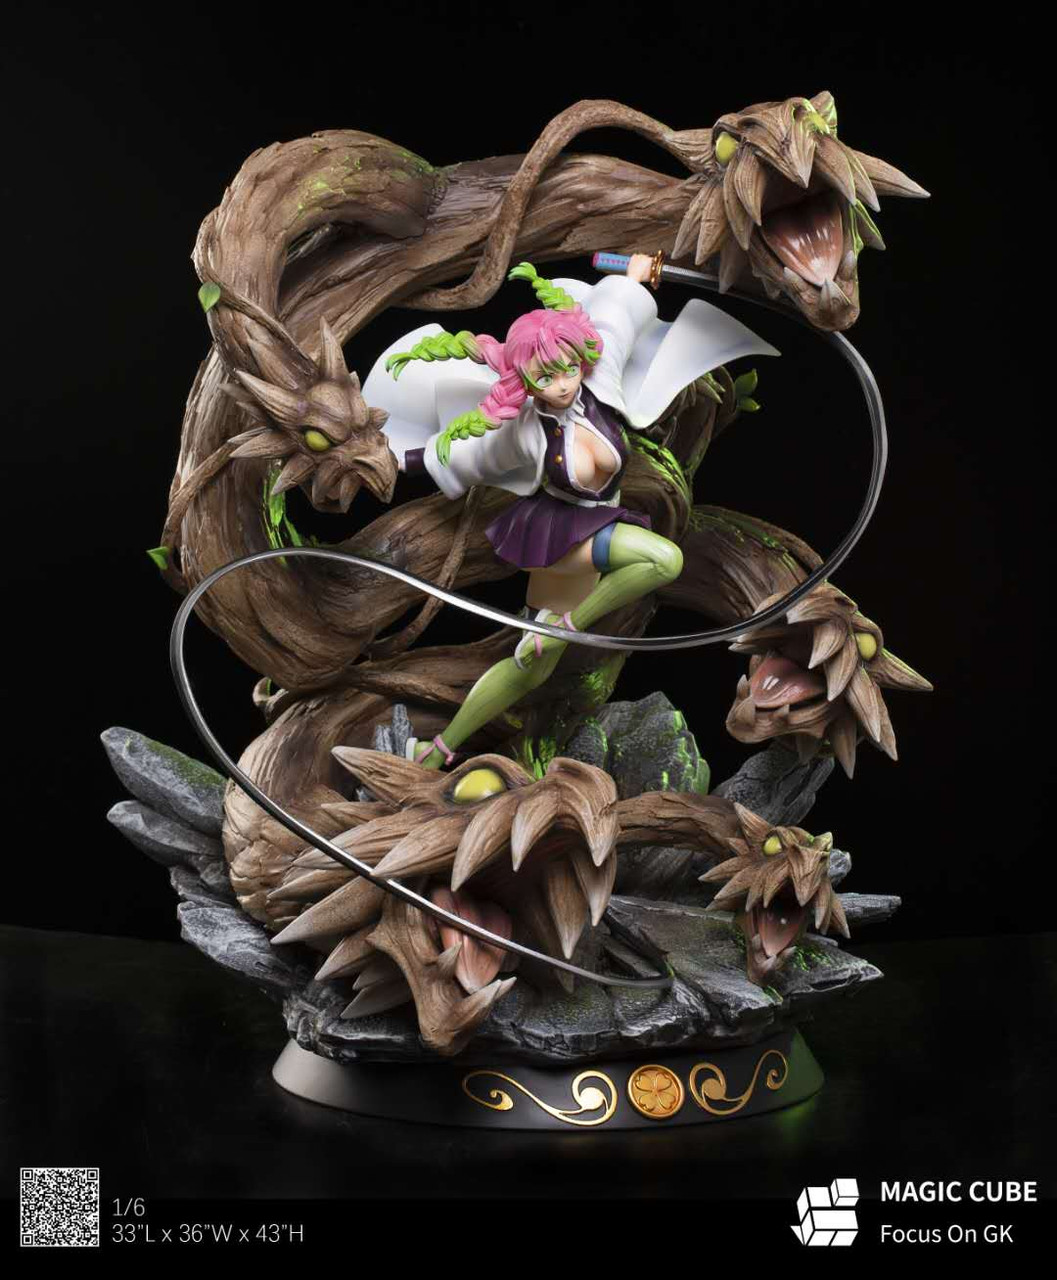 Pre Order Magic Cube Kanroji Mitsuri 1 6 Resin Statue Fnc Store Check out our mitsuri demon slayer selection for the very best in unique or custom, handmade pieces from our color shops. pre order magic cube kanroji mitsuri 1